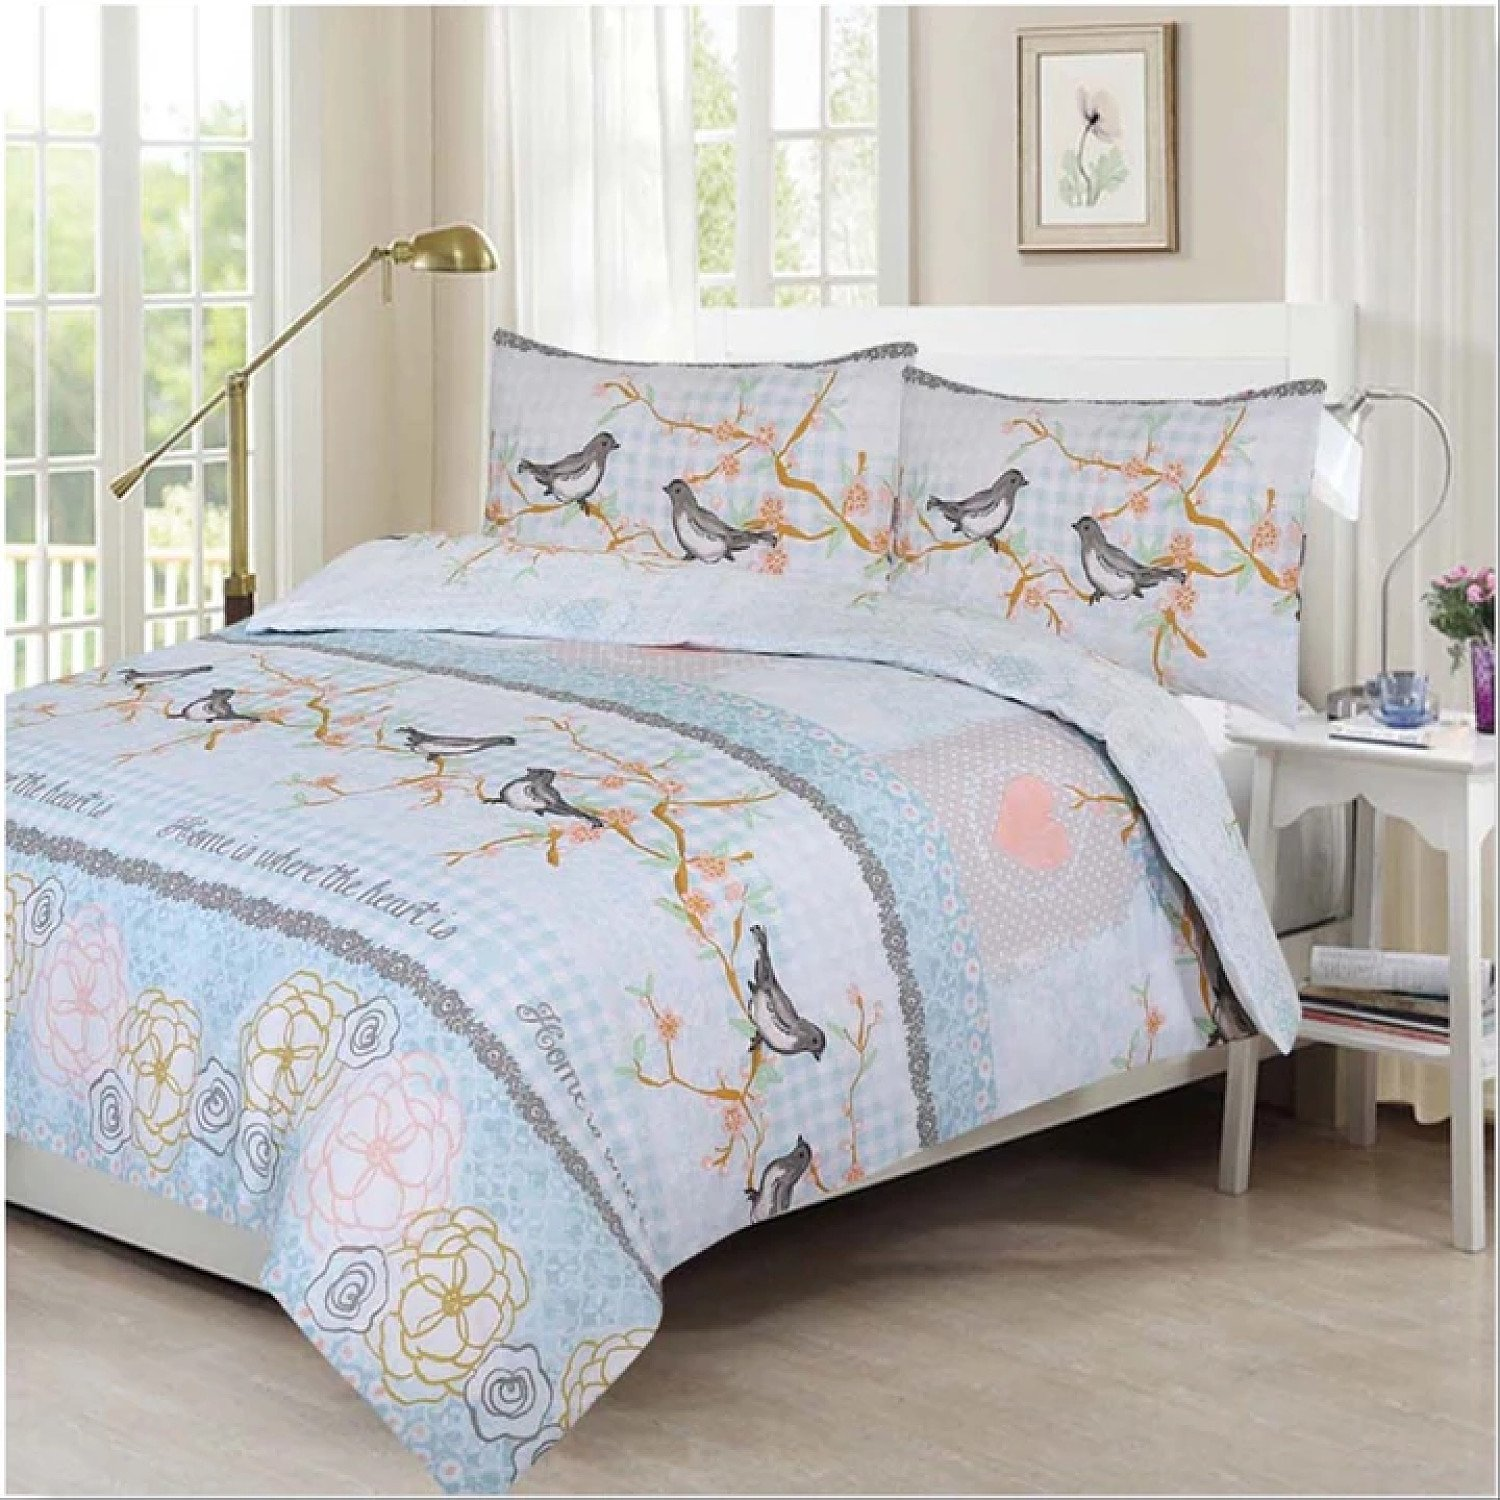 (Sweet Birds)) New 100% Polycotton Reversible Printed Design Duvet Quilt Cover with Pillowcases